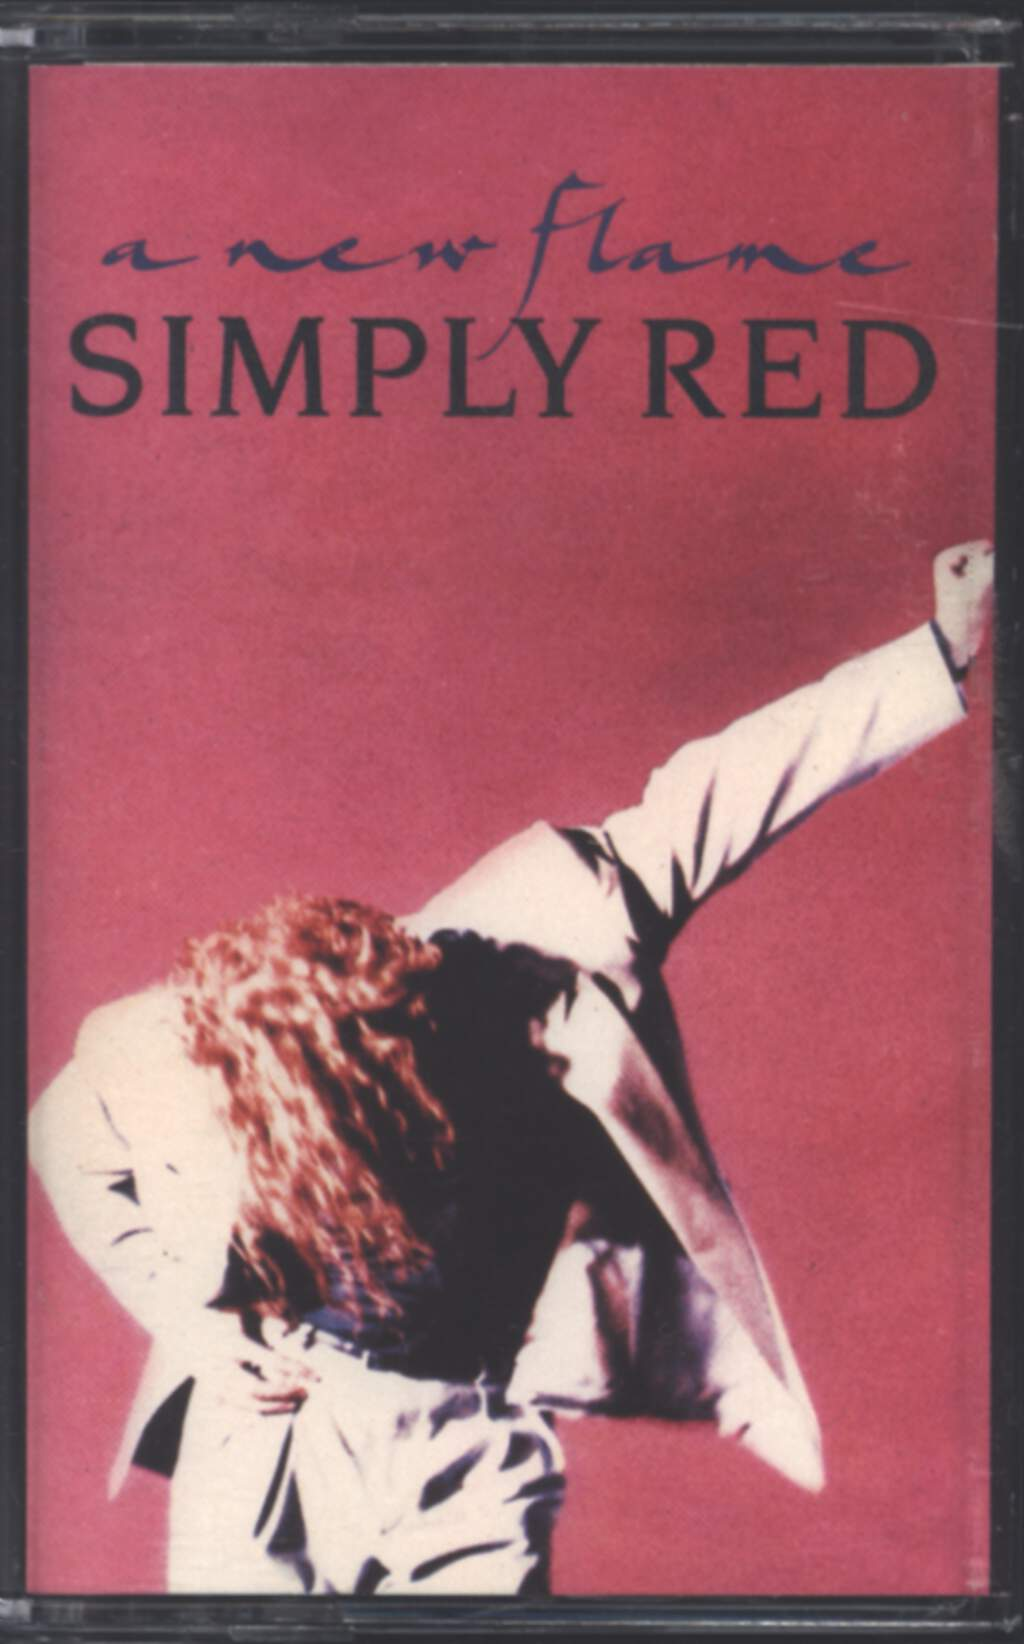 Simply Red: A New Flame, Compact Cassette